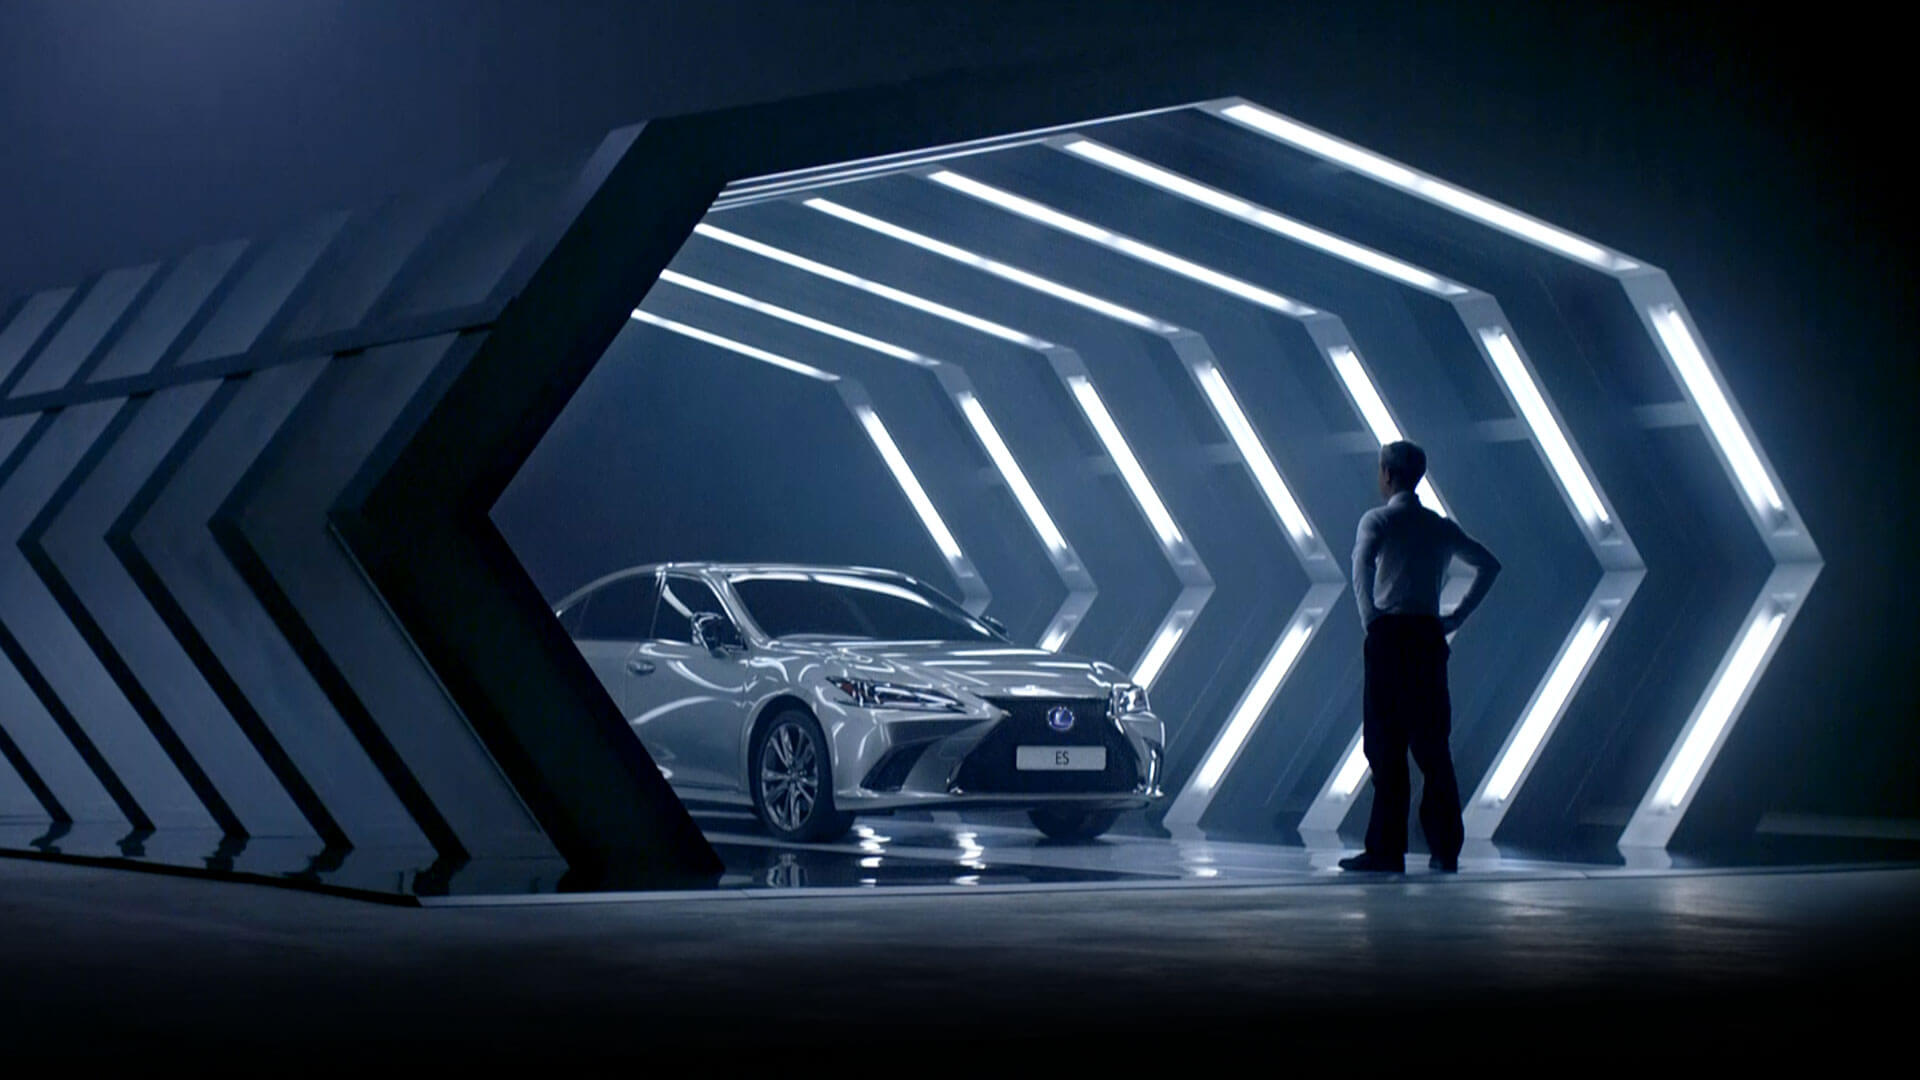 2019 lexus es driven by intuition hero tvc video cover